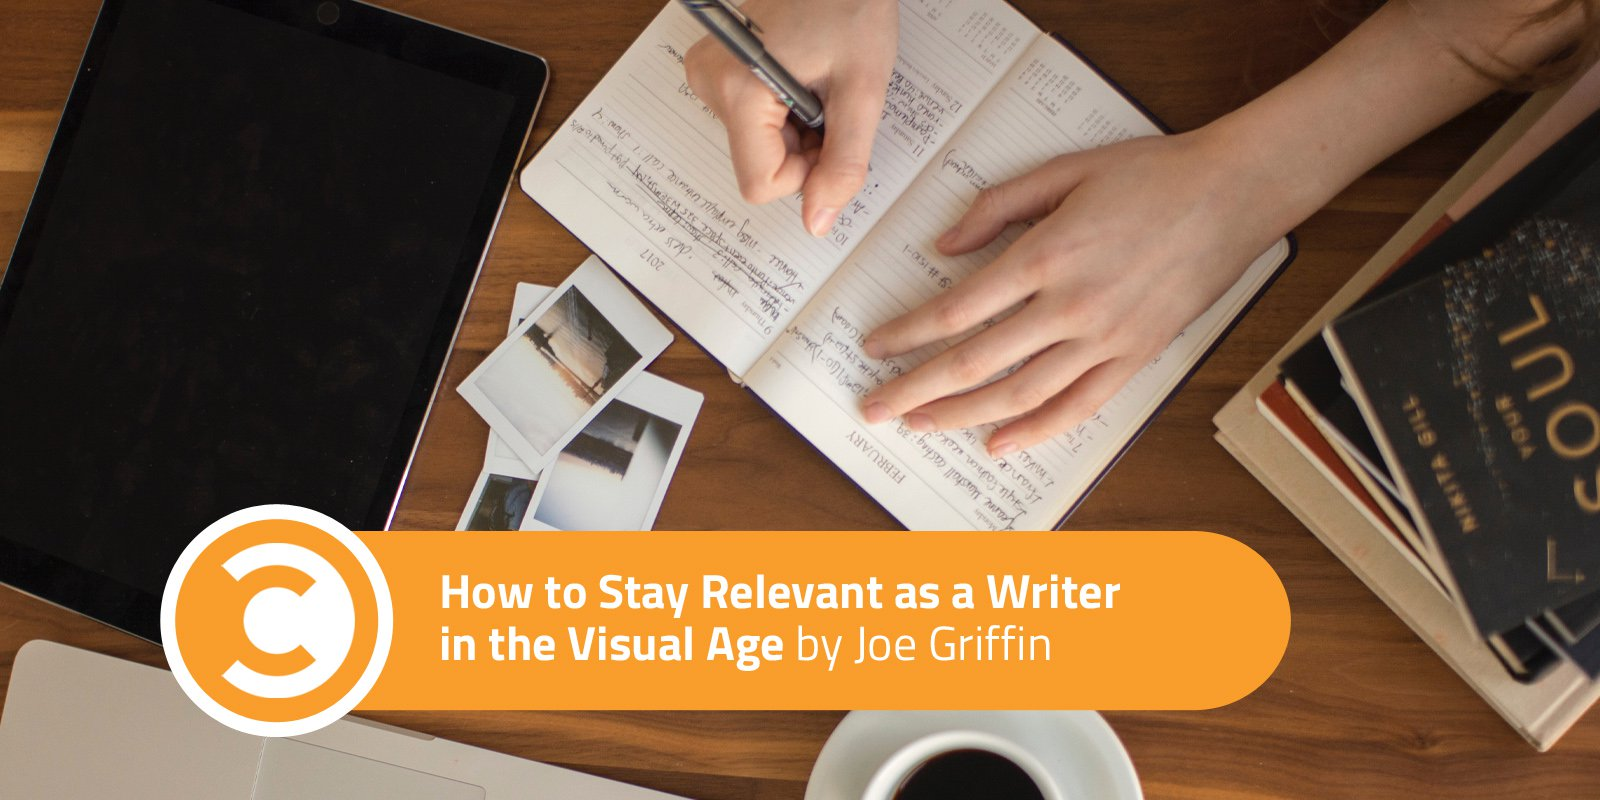 How-to-Stay-Relevant-as-a-Writer-in-the-Visual-Age